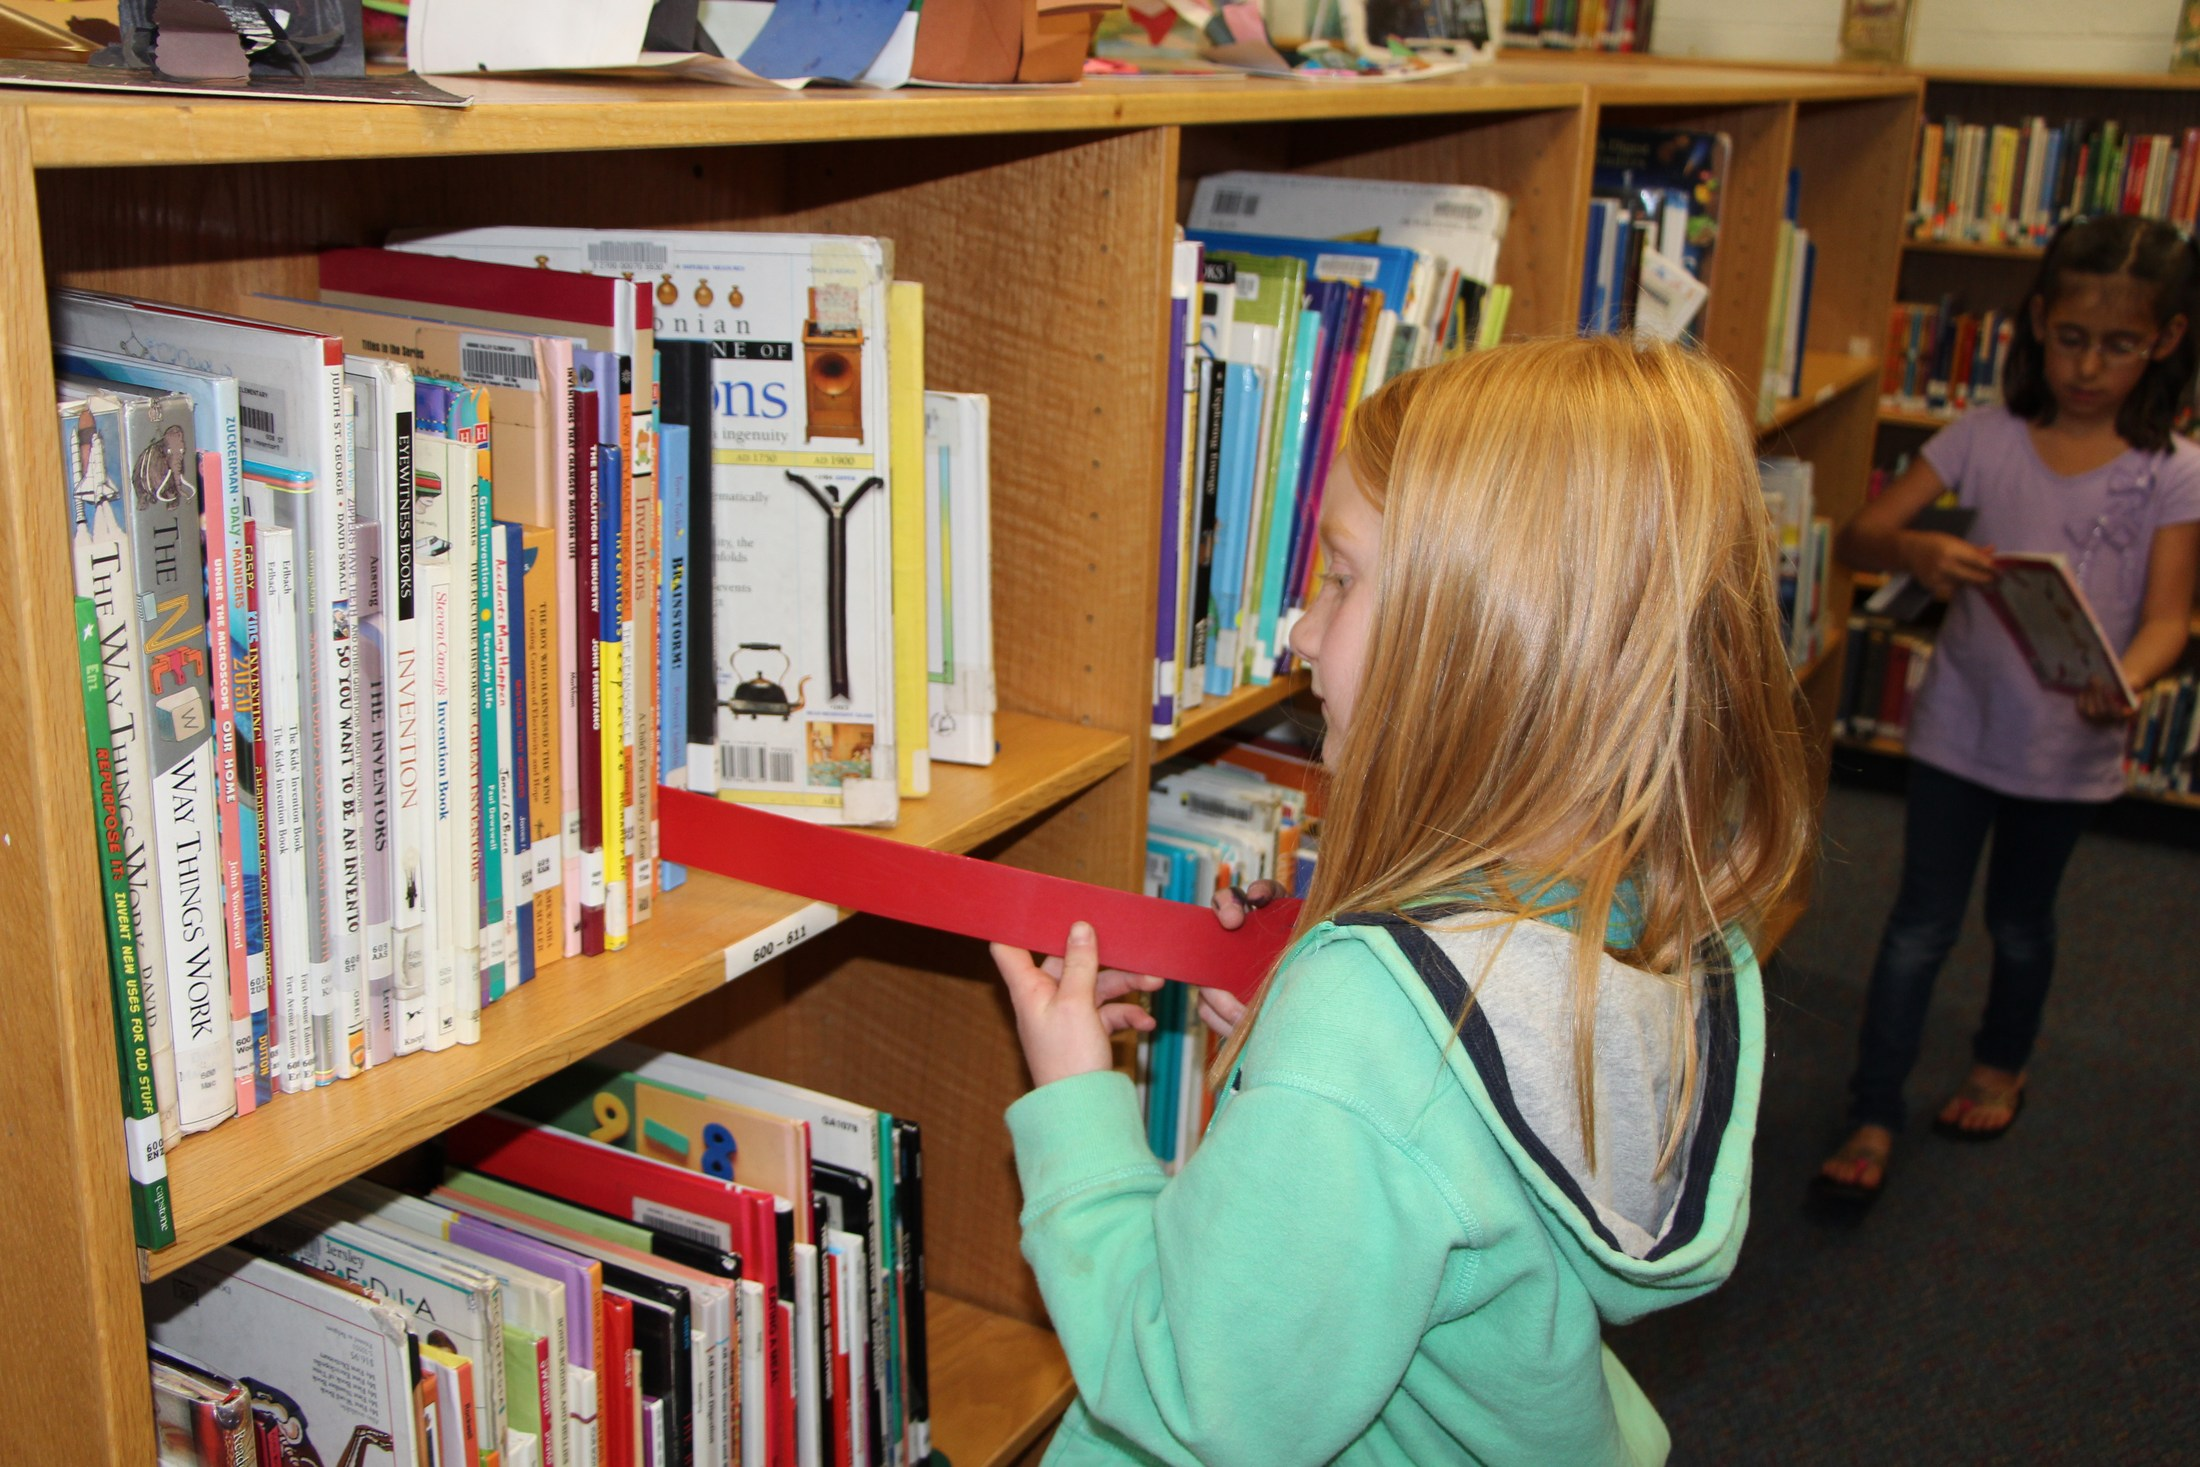 Child using shelf marker in library.